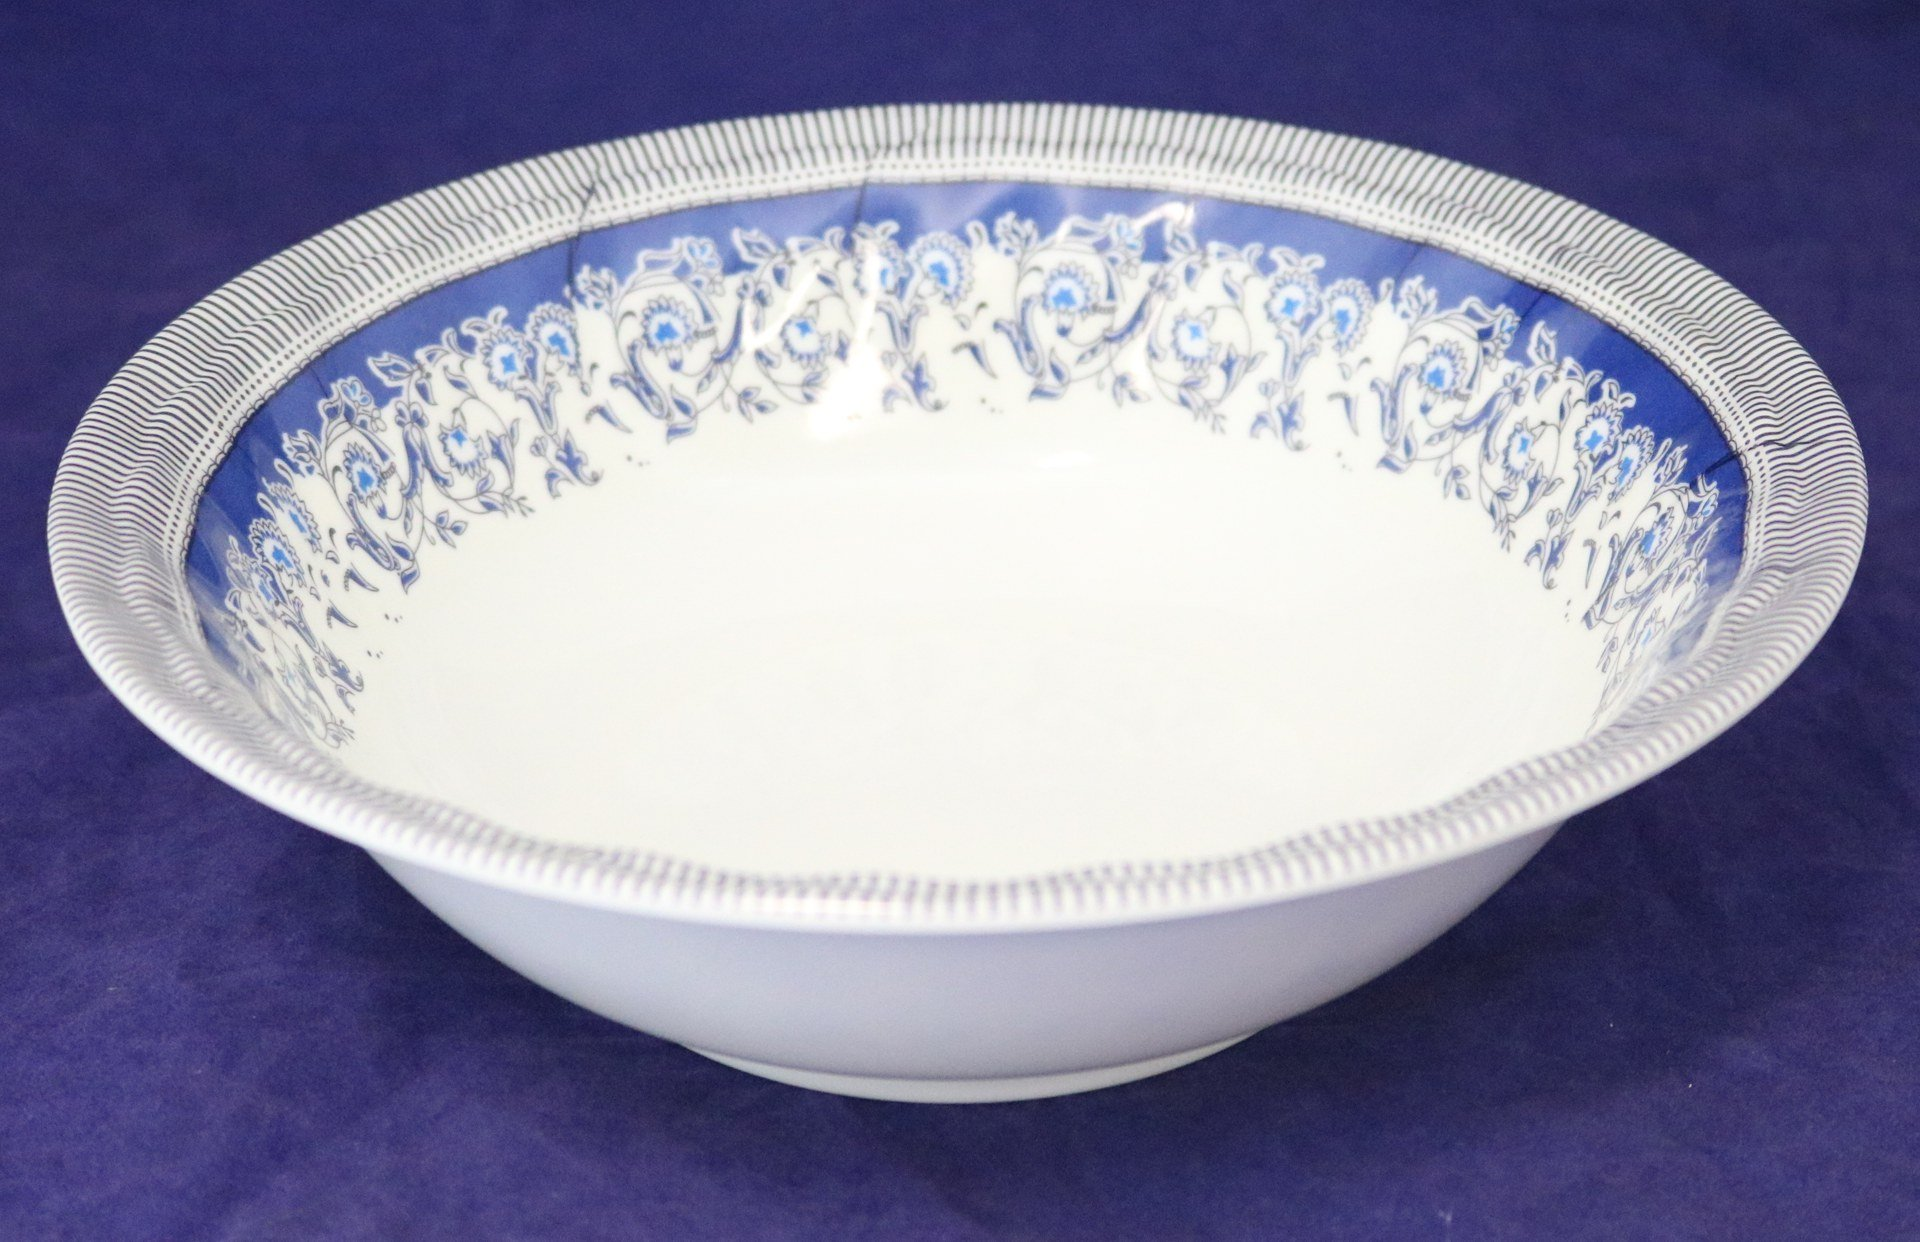 9 Inch Melamine Soup Bowl Plate